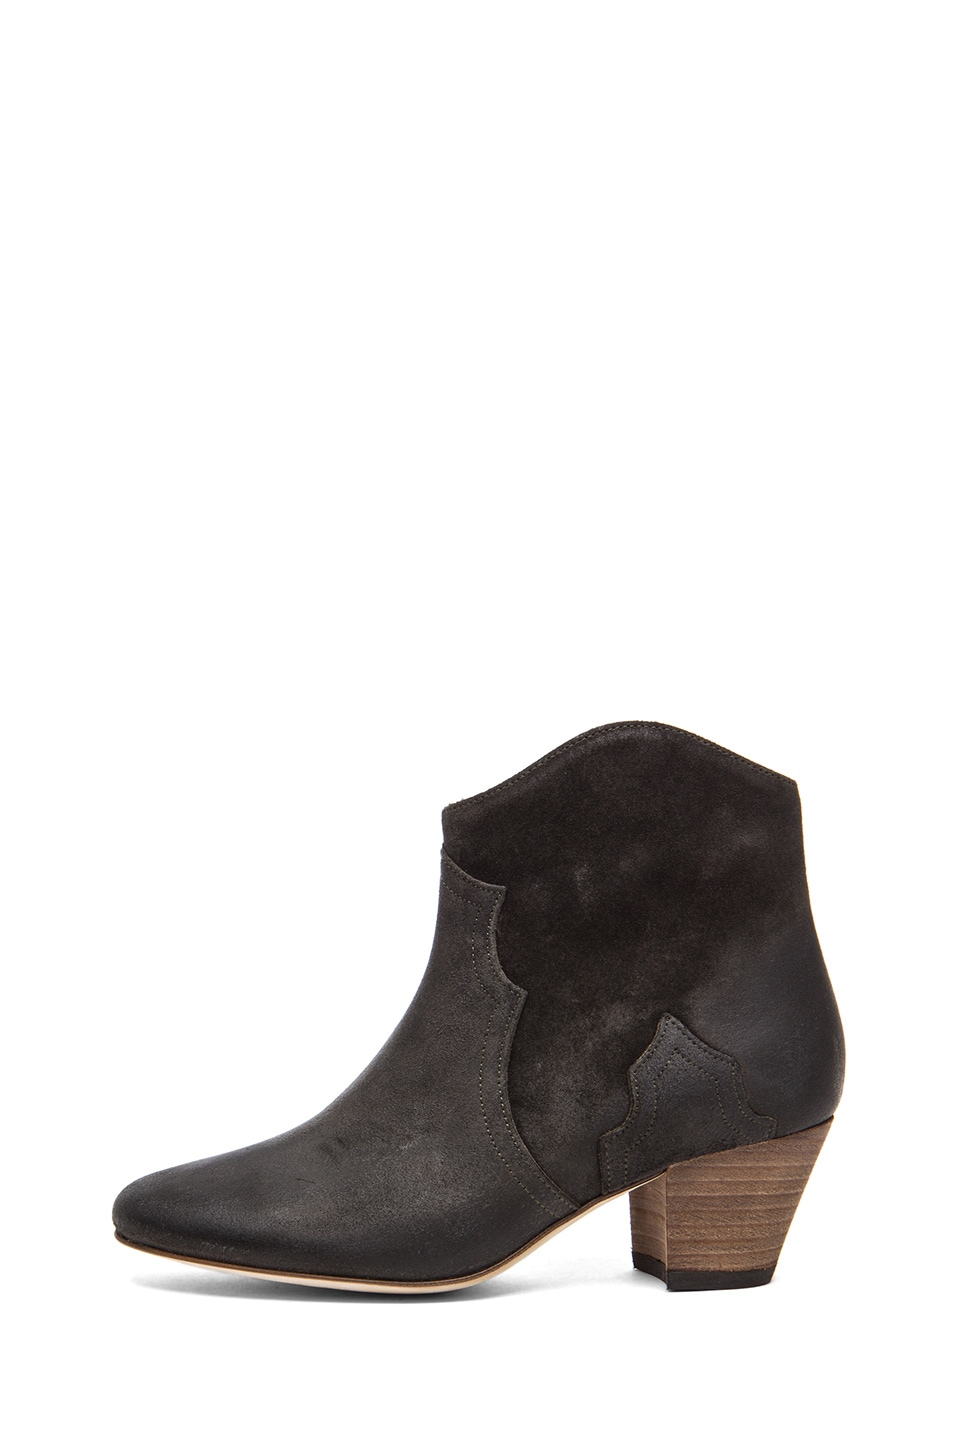 Image 1 of Isabel Marant Dicker Calfskin Velvet Leather Boot in Faded Black